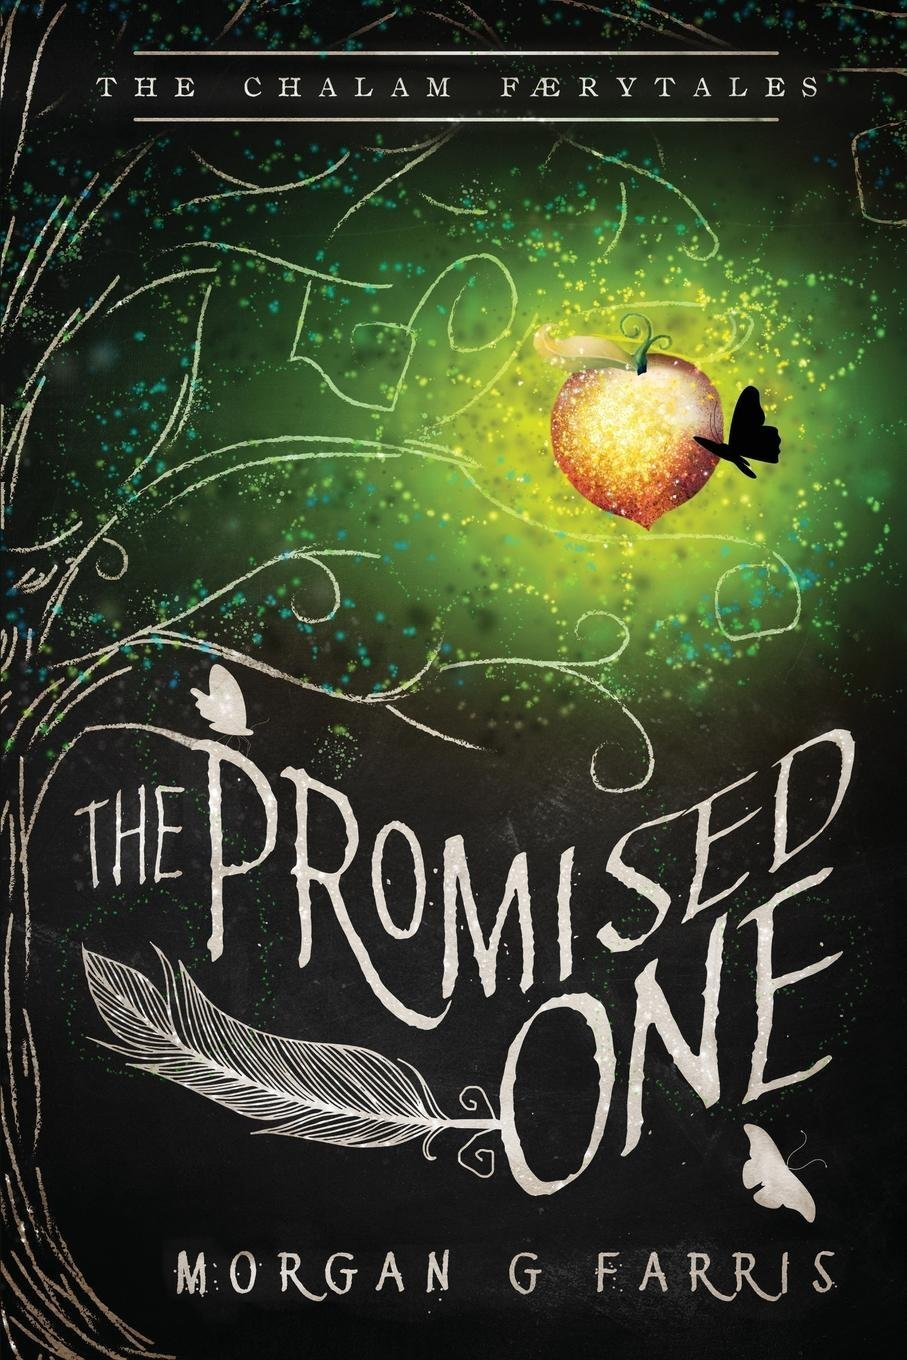 Image result for promised one morgan farris